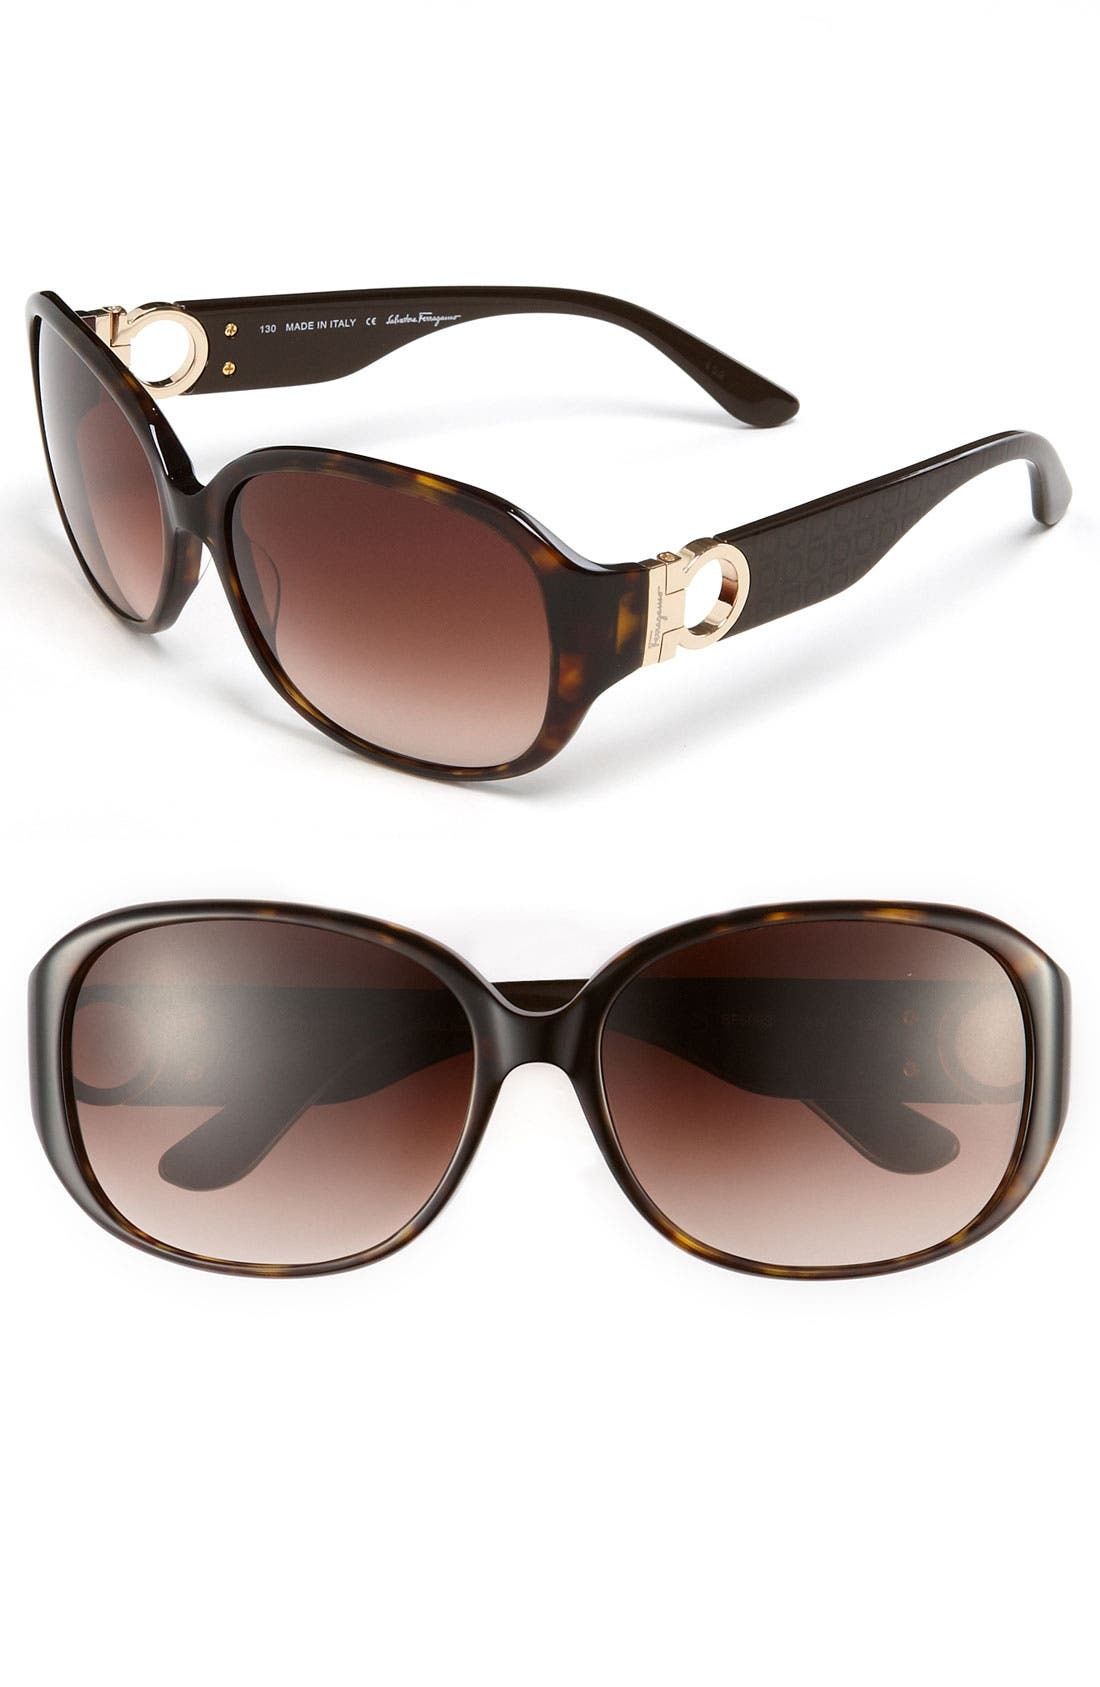 Alternate Image 1 Selected - Salvatore Ferragamo 59mm Classic Sunglasses